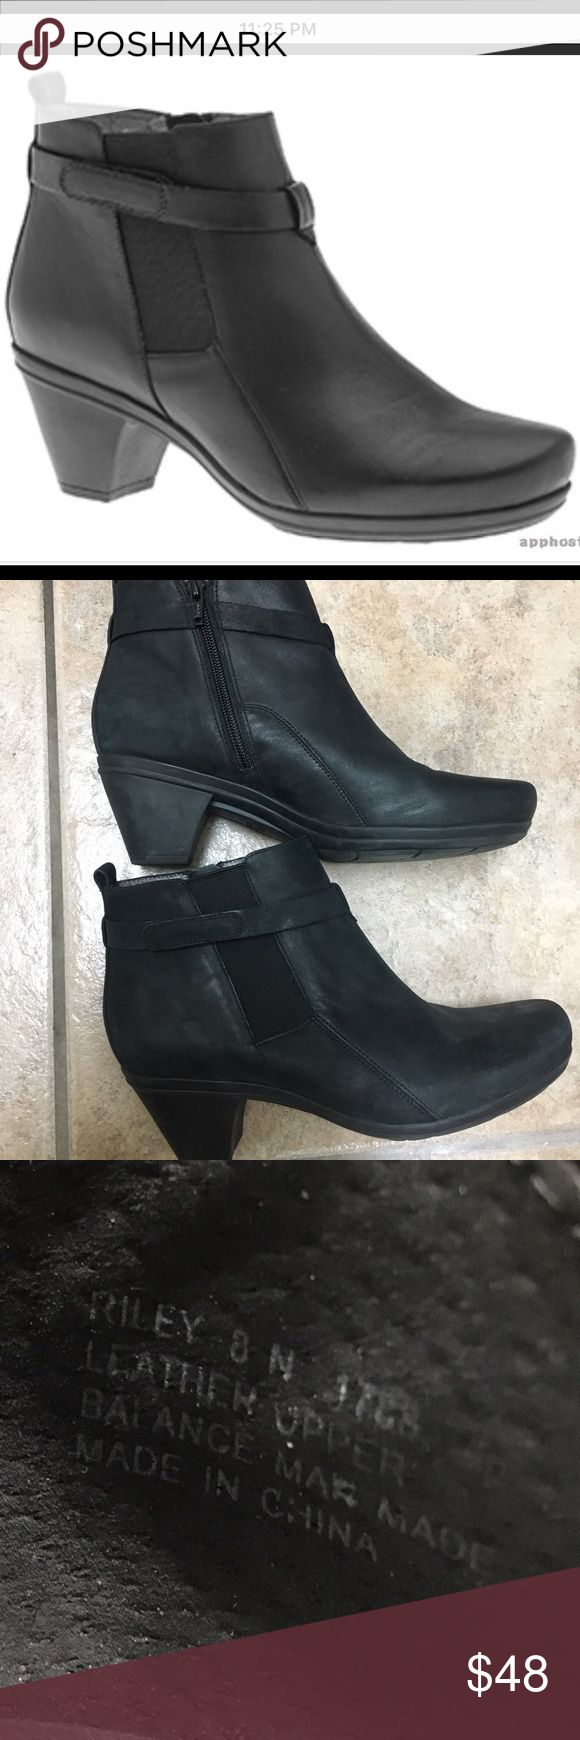 Abeo Bio Riley 8N Black Boots New to yoU! Riley Black Women's BioMechanical Shoes. Abeo Shoes Heeled Boots